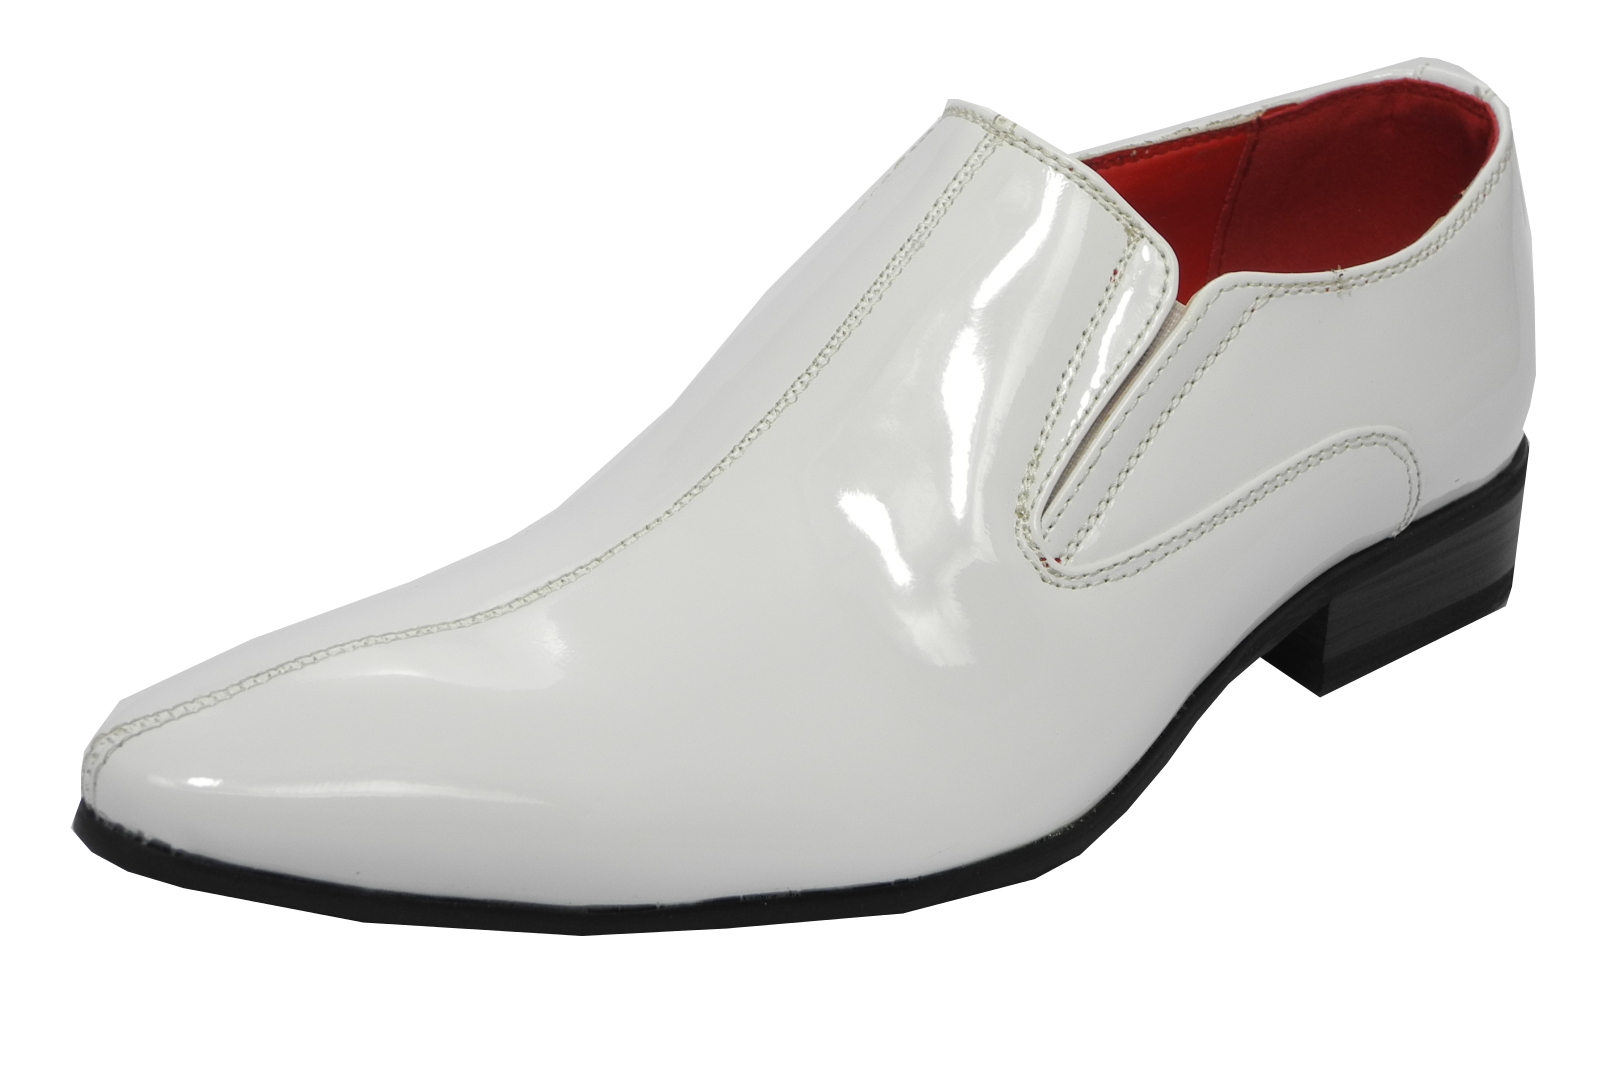 mens patent leather lined pointed toe slip on dress shoes